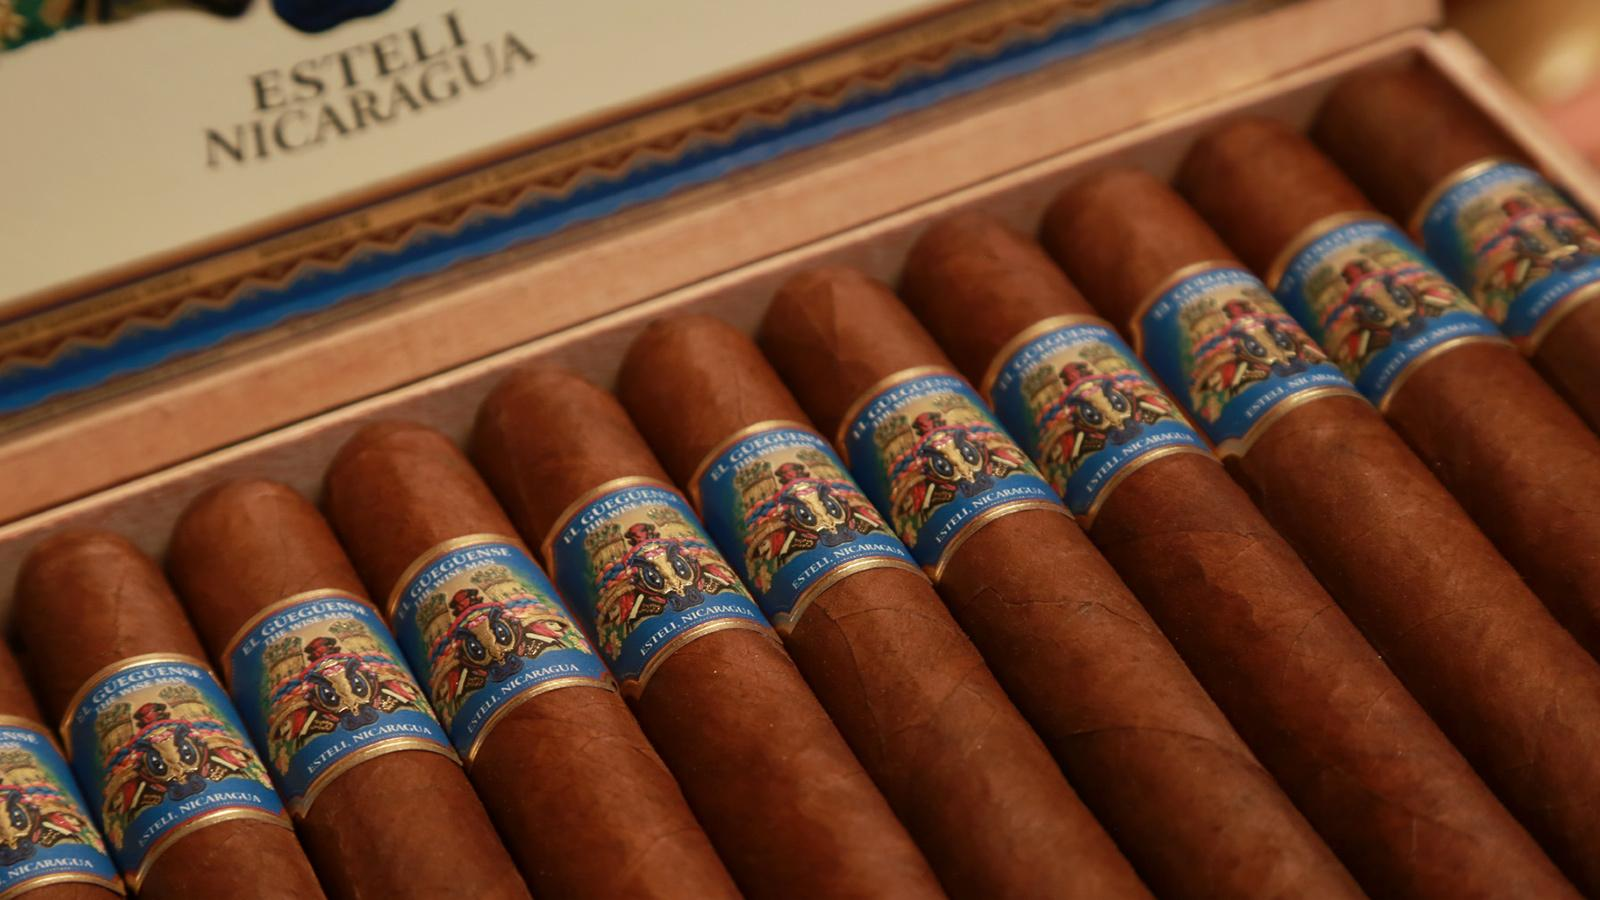 El Güegüense, Melillo's first brand with Foundation Cigar Co.